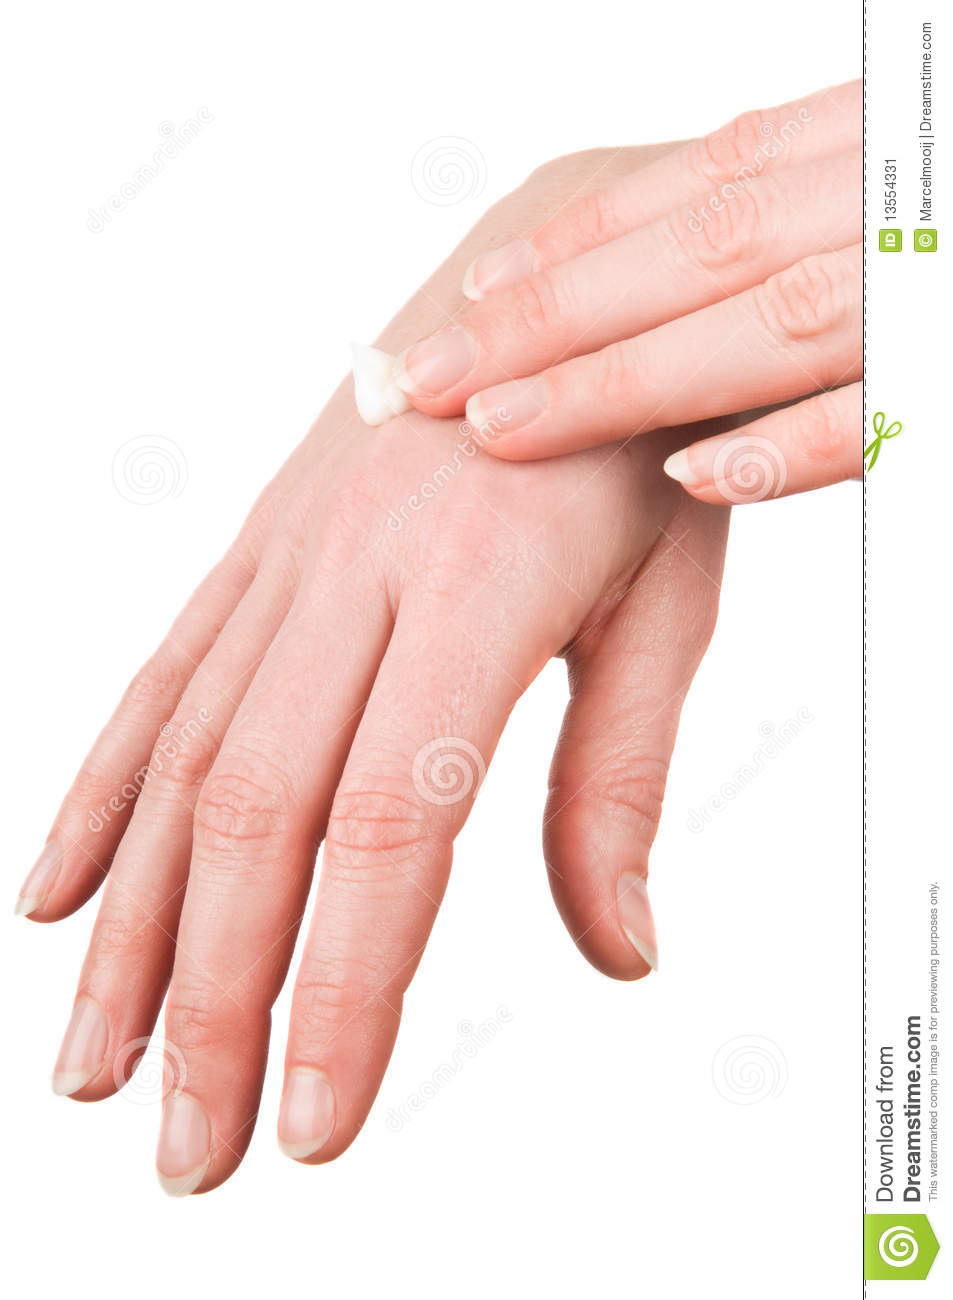 Woman putting cream on her hands